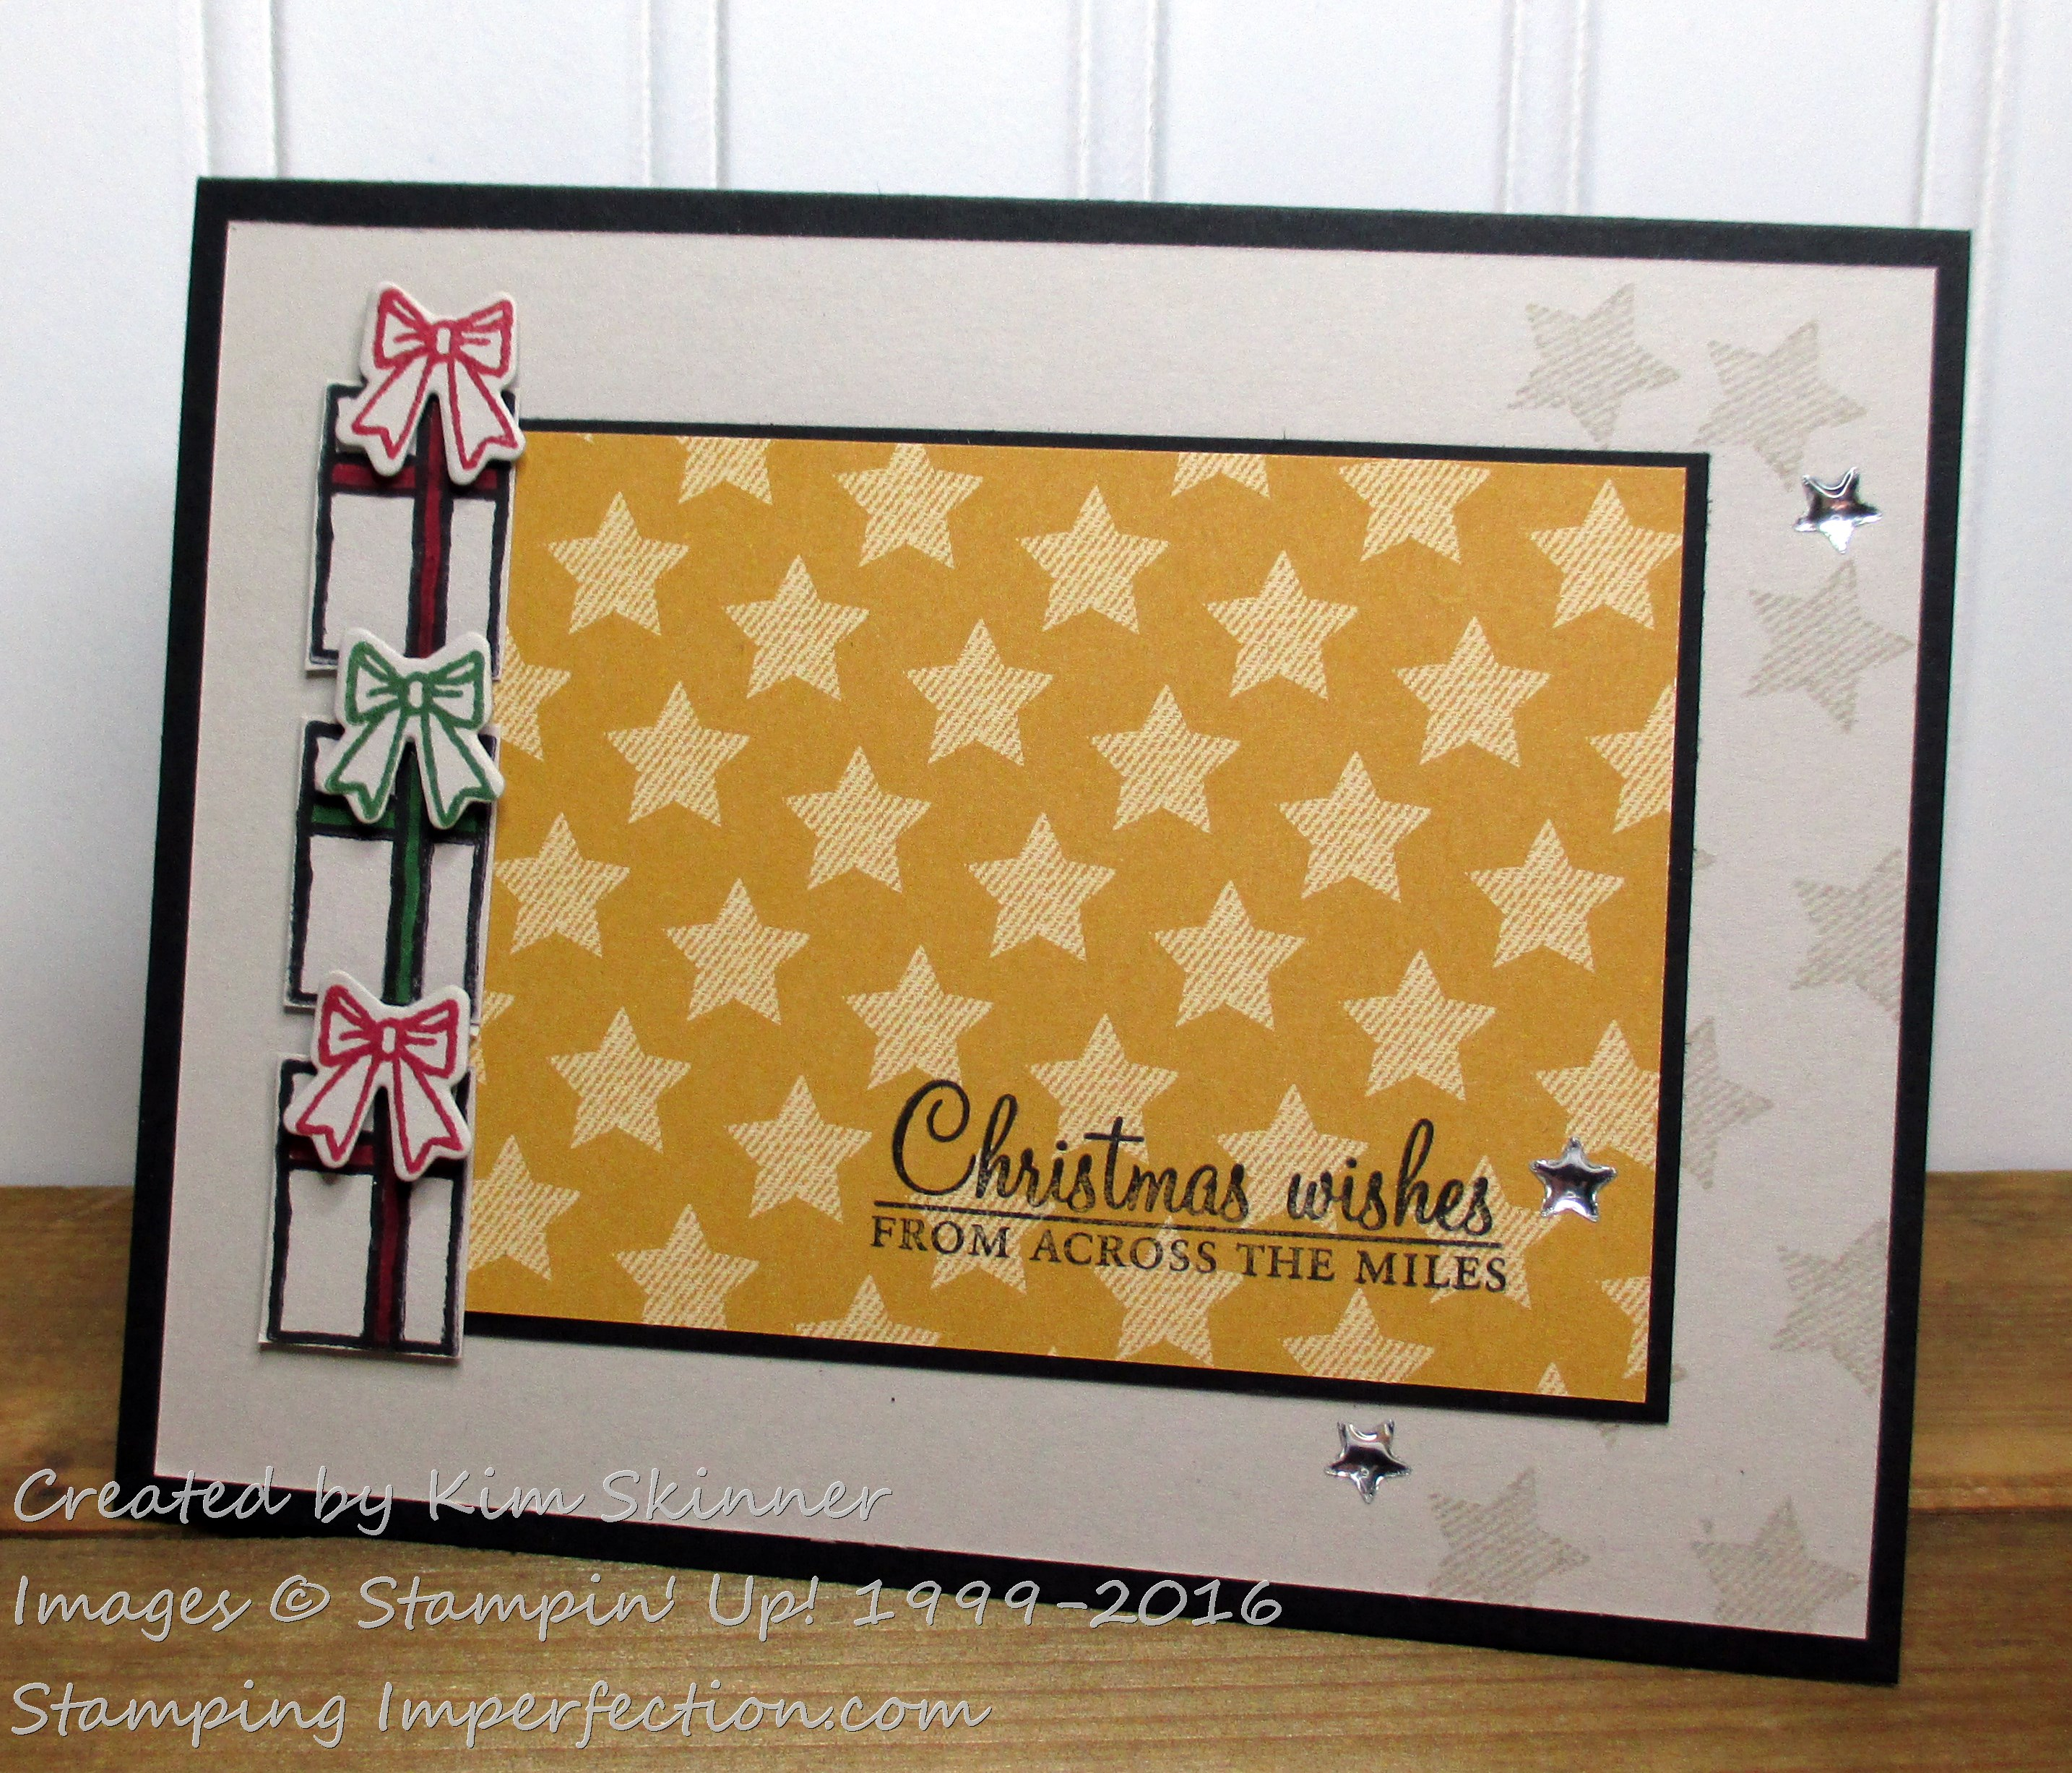 Stamping Imperfection paper craft Crew